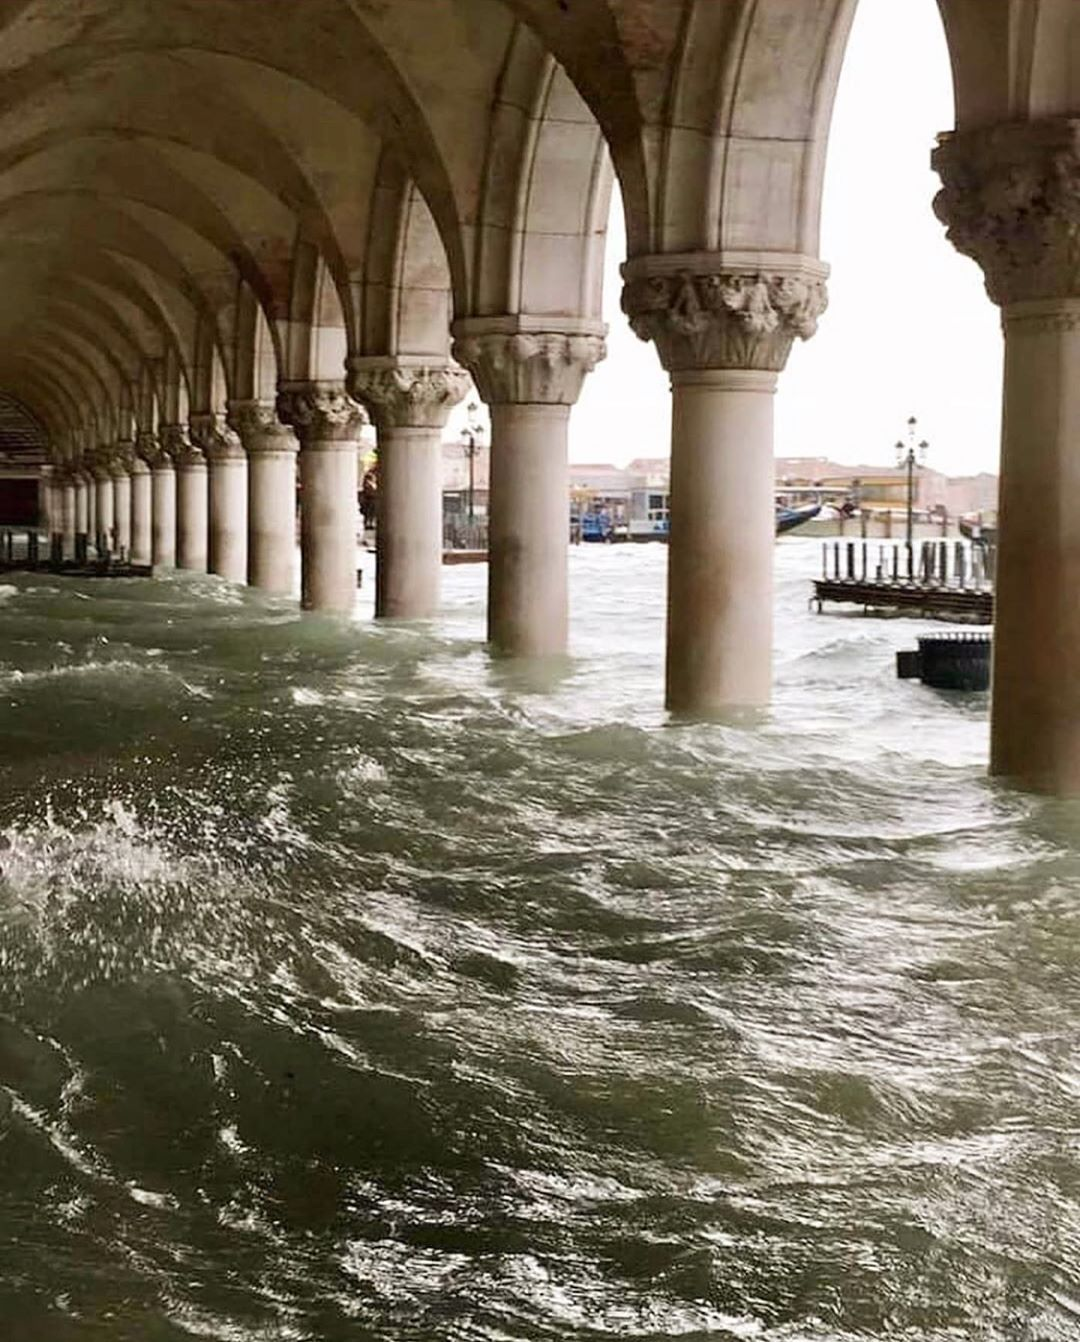 "Photo of Steffan on Instagram: ""Venice, Italy. RG @marielouisescio  #venice #italy #water #ocean #floods #arches #architecture #columns #tragedy #interiors #setdesign…"""